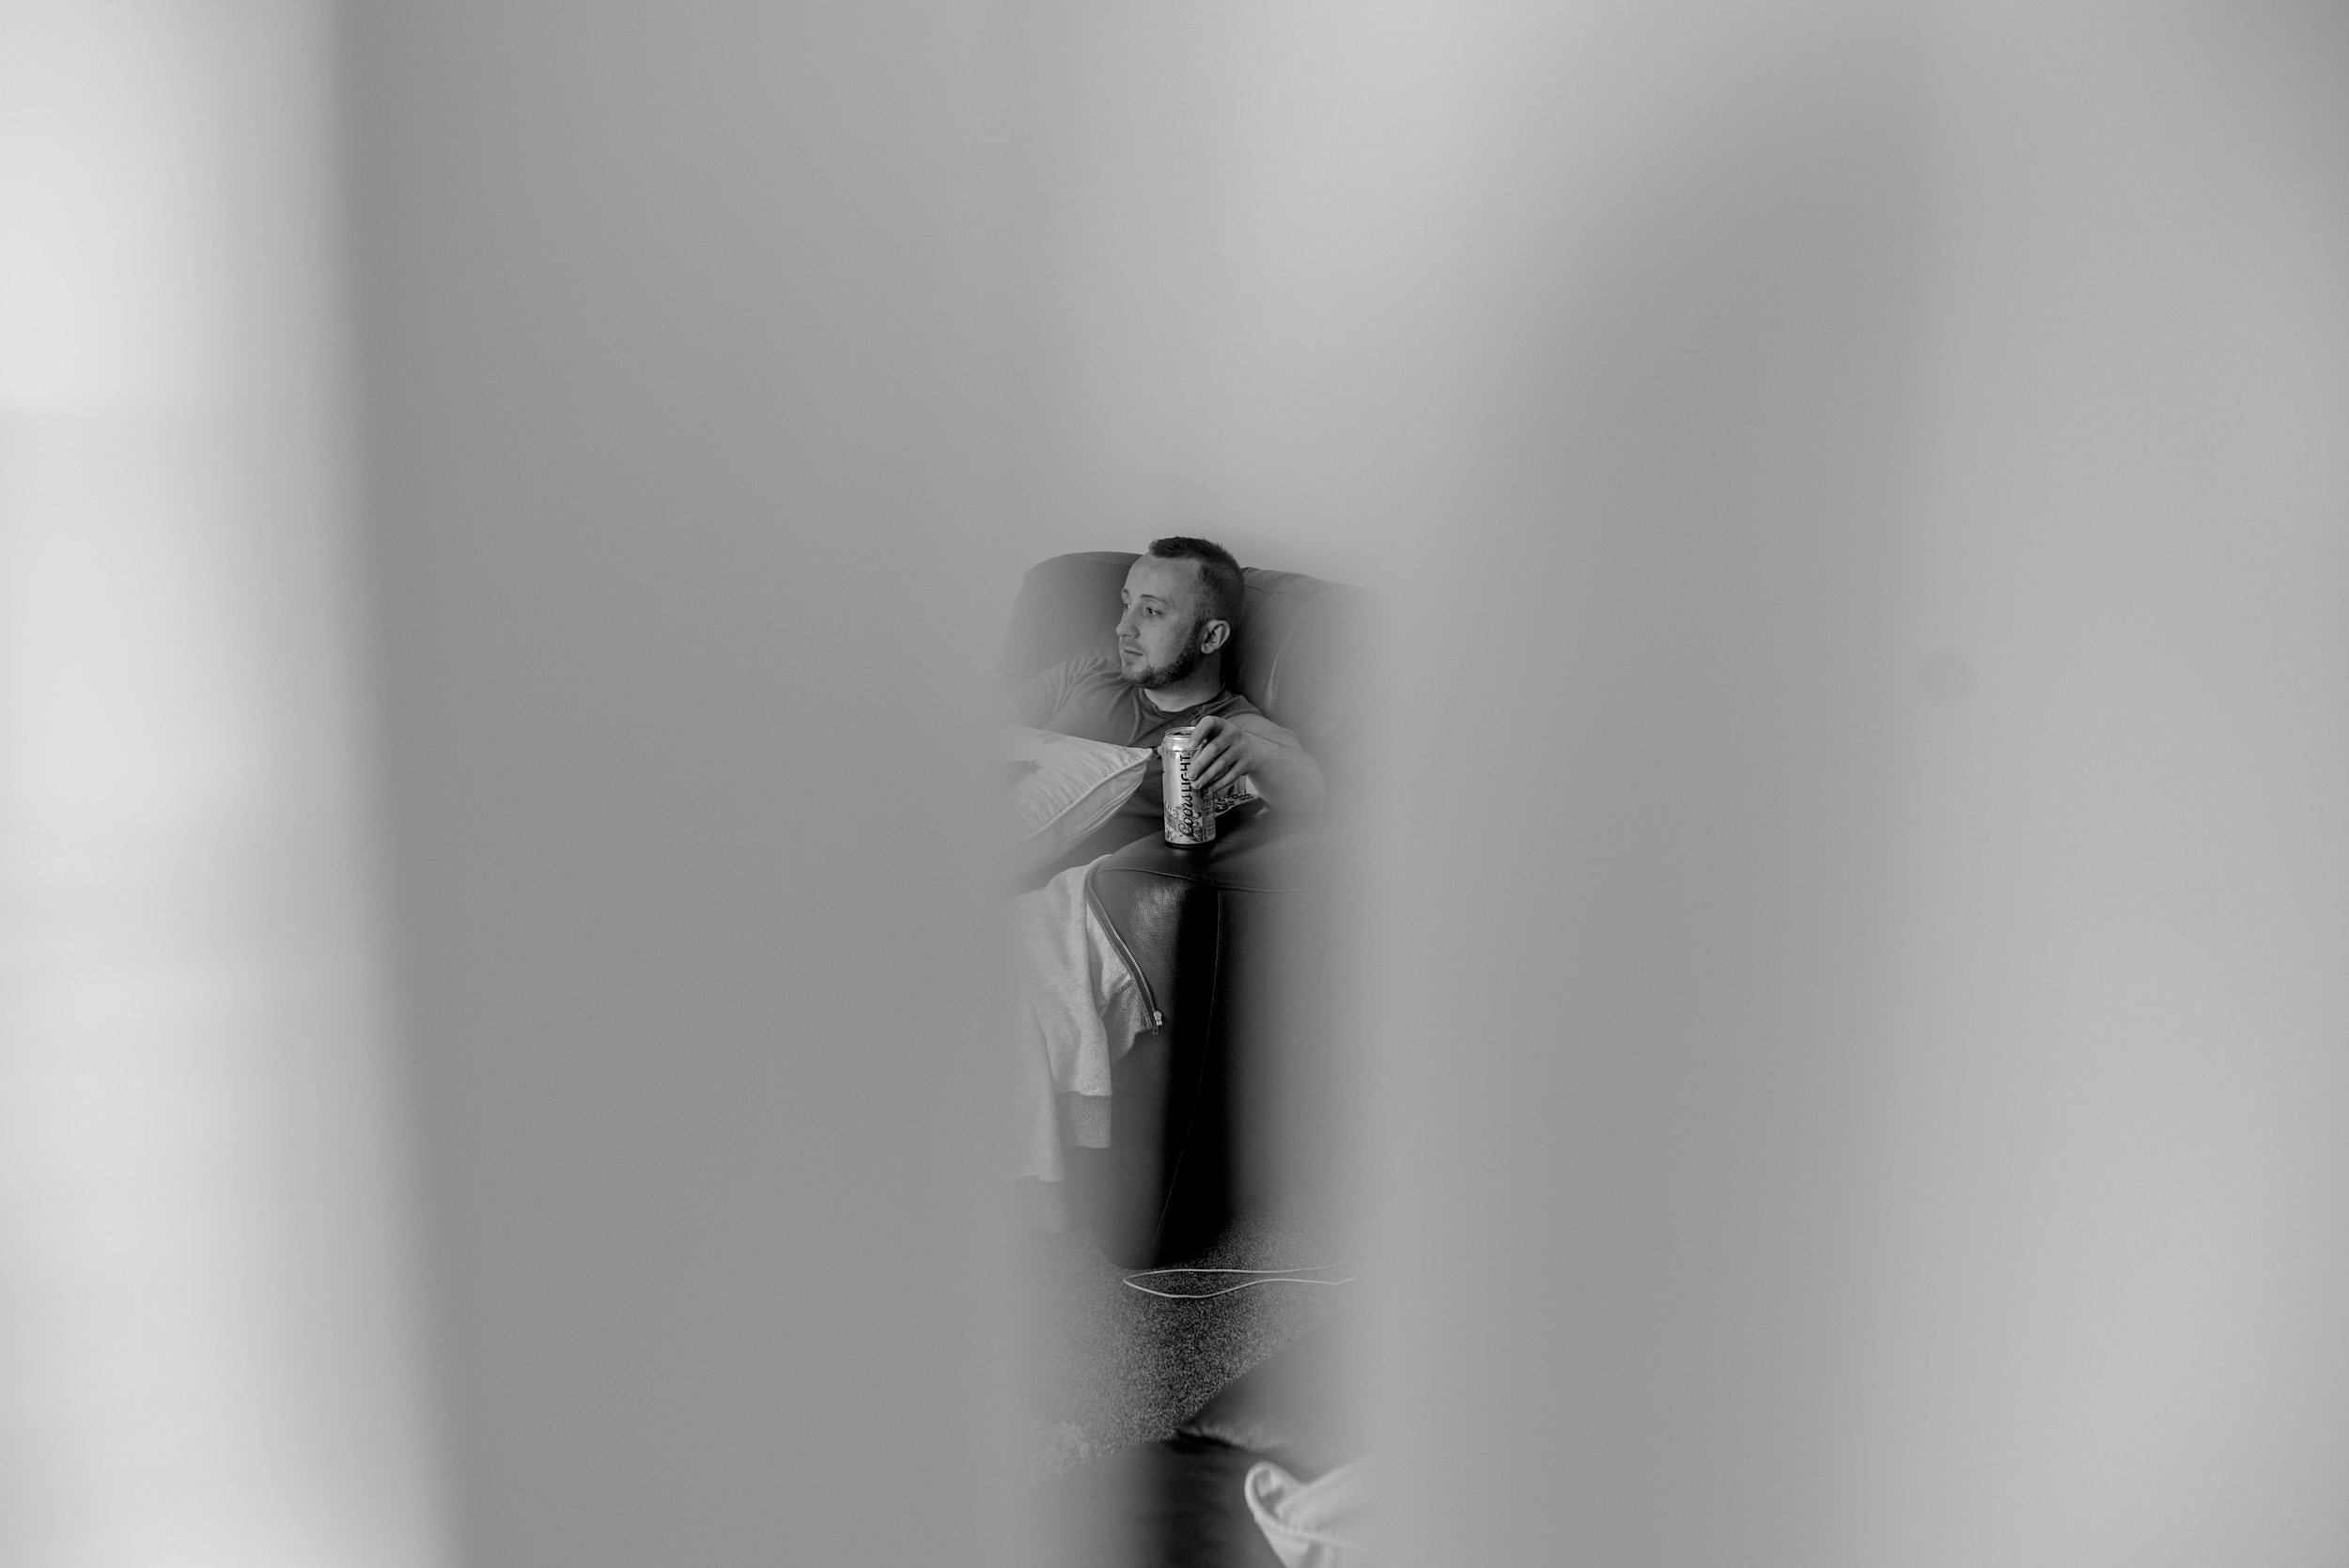 Groomsman sitting on a chair with a can of foster, taken through a crack in the door.